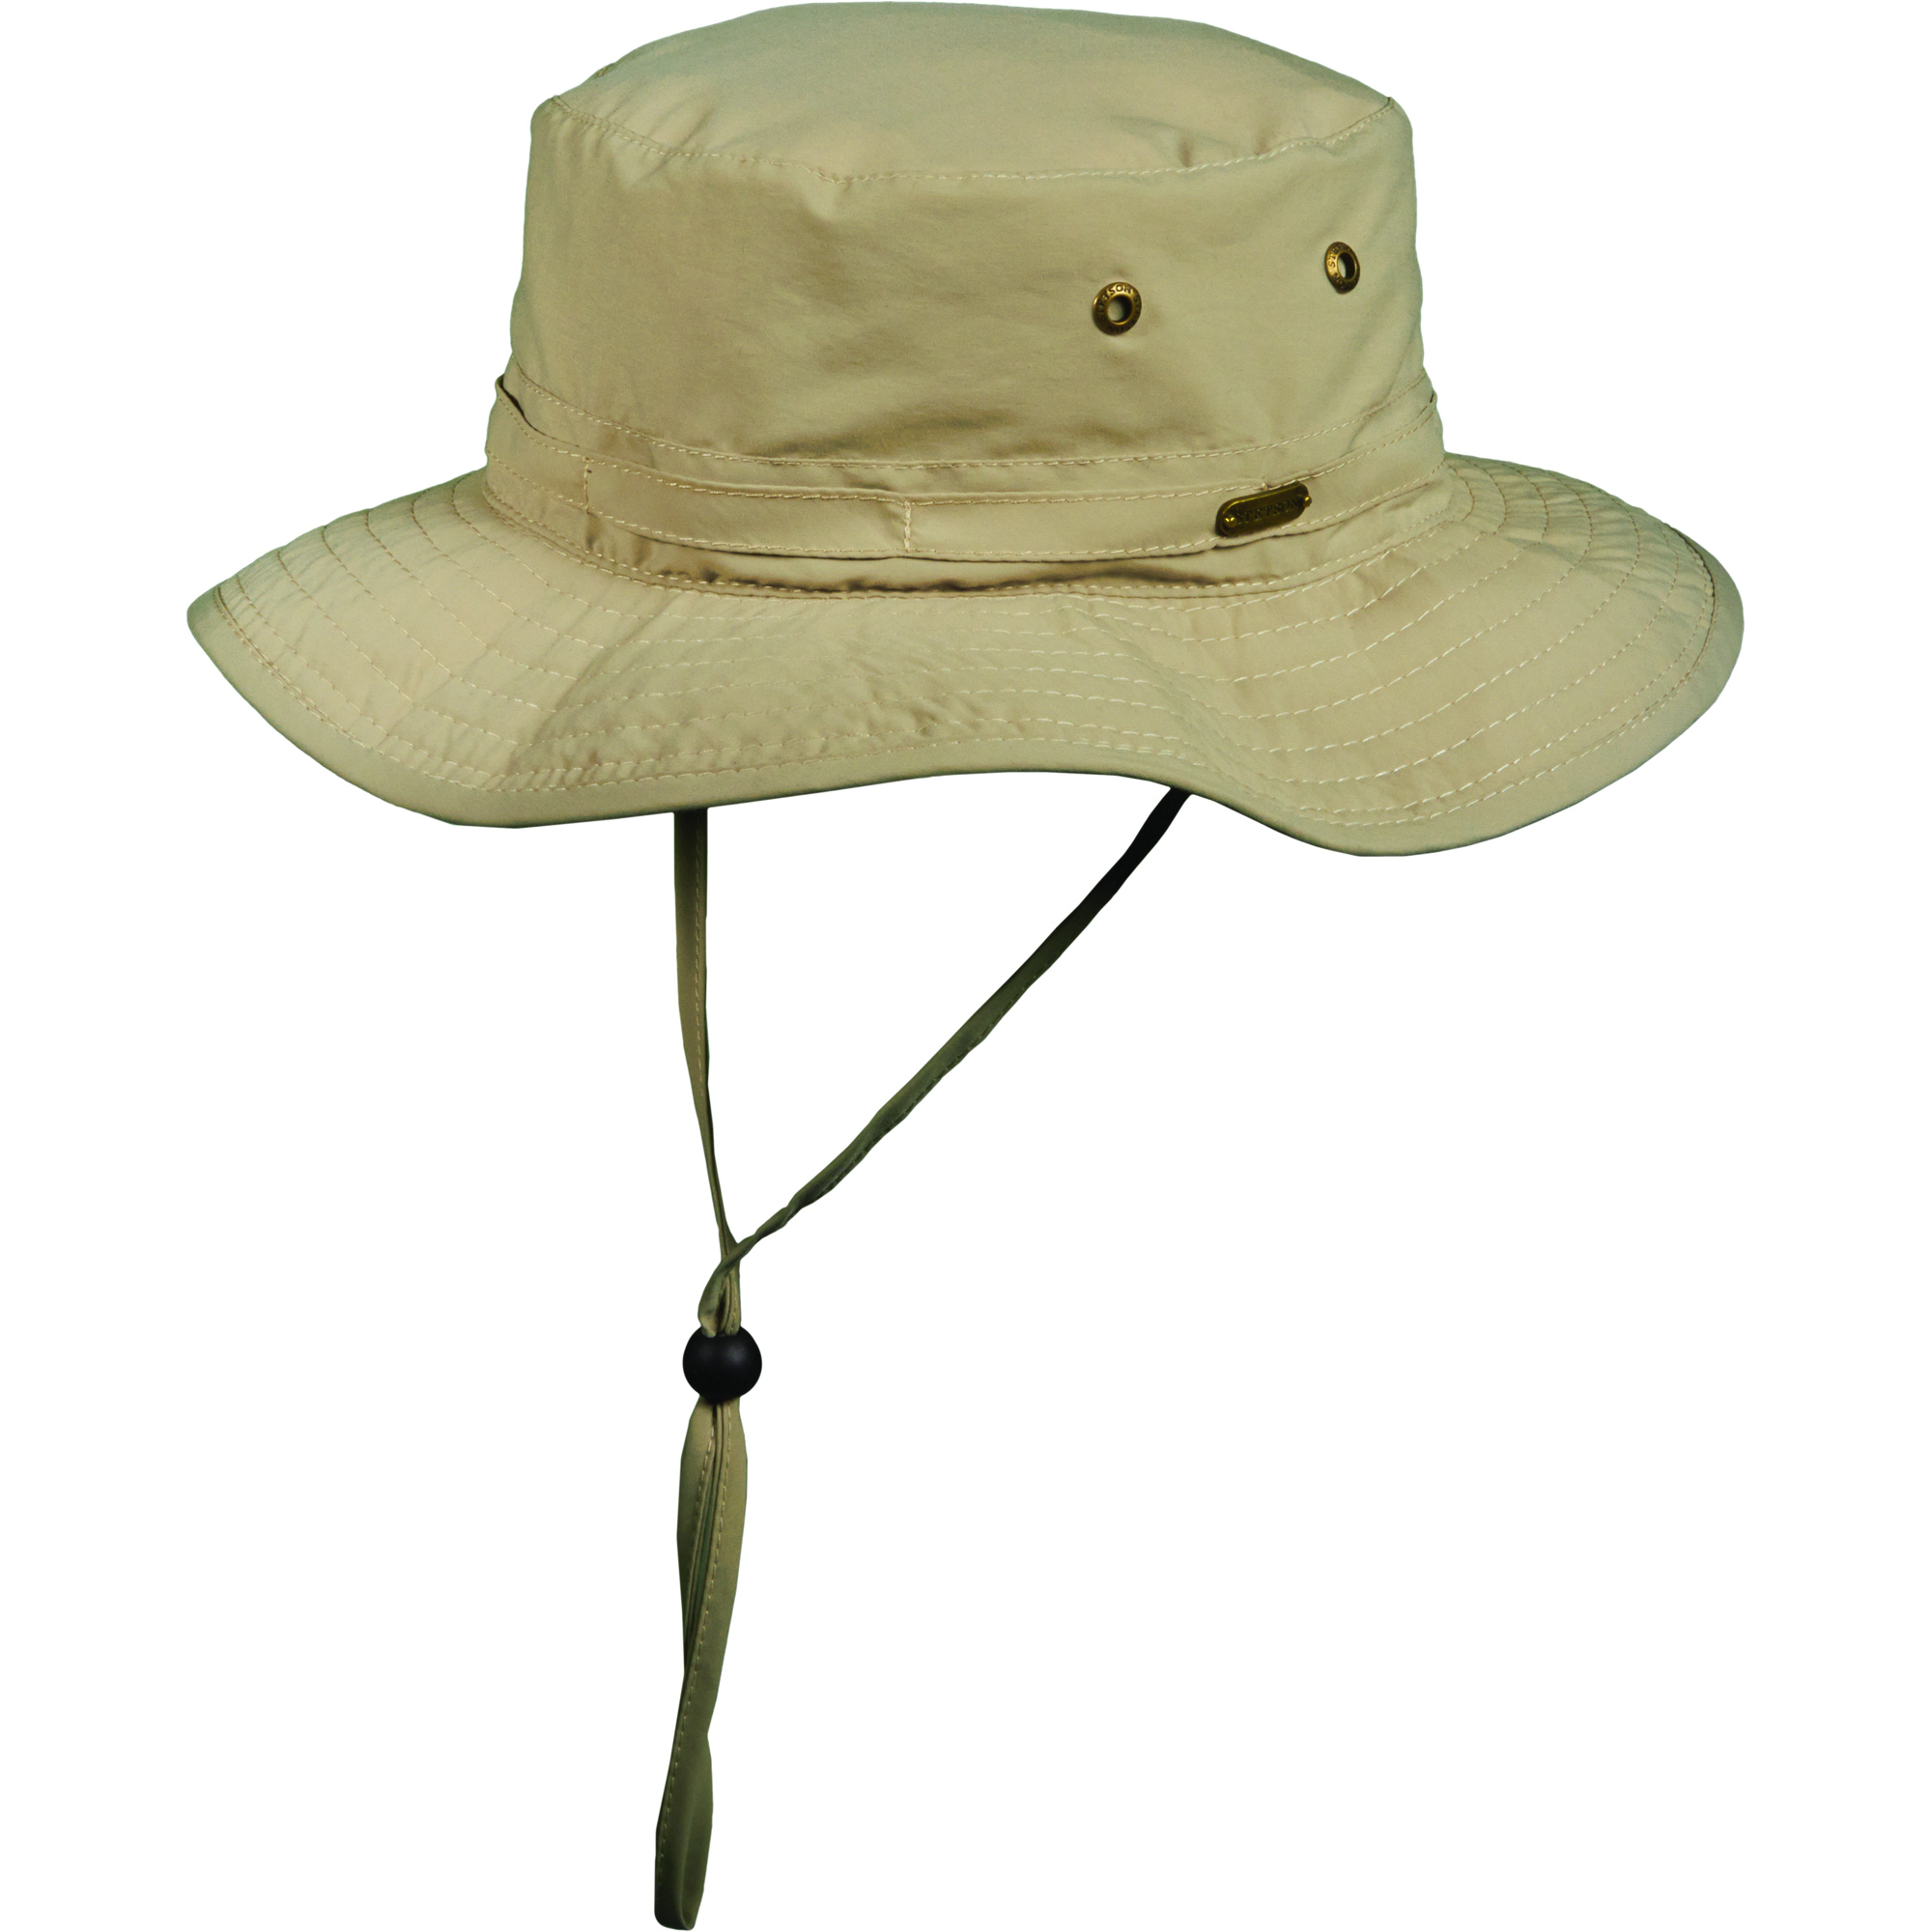 The Stetson hat with No Fly Zone fabric.